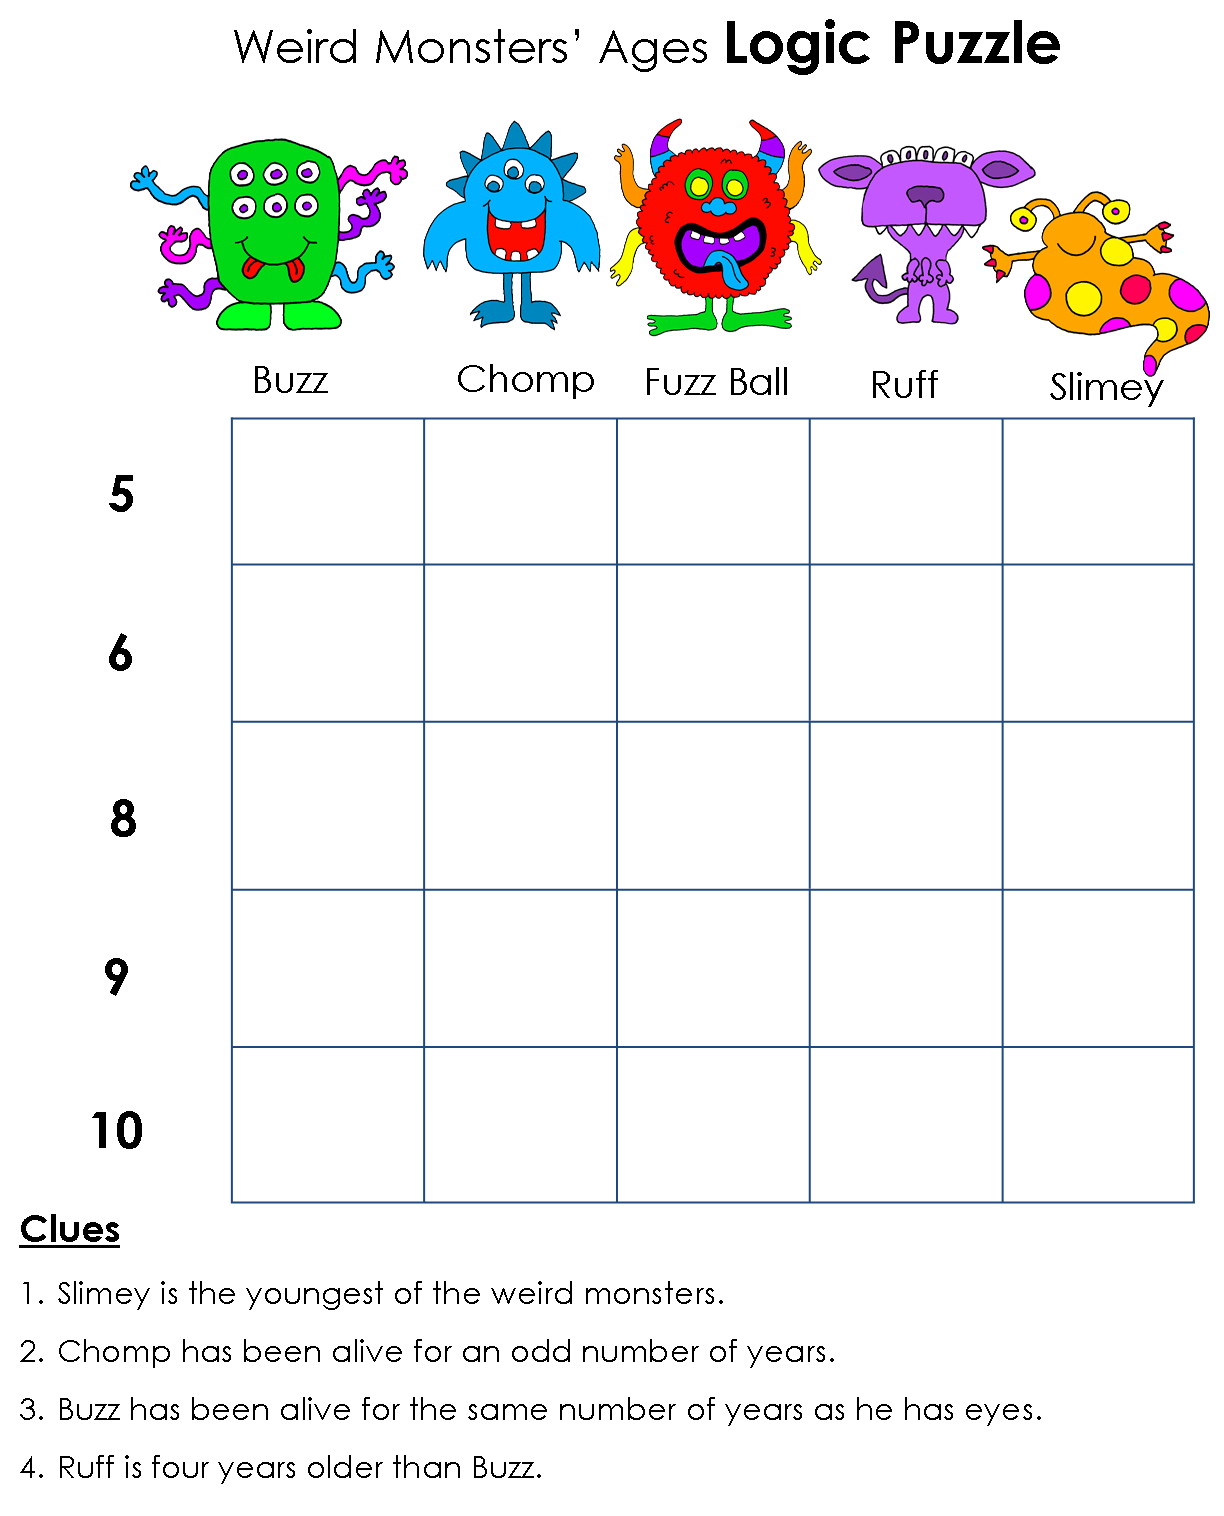 Writing Activities For Middle School Printable Logic Puzzles